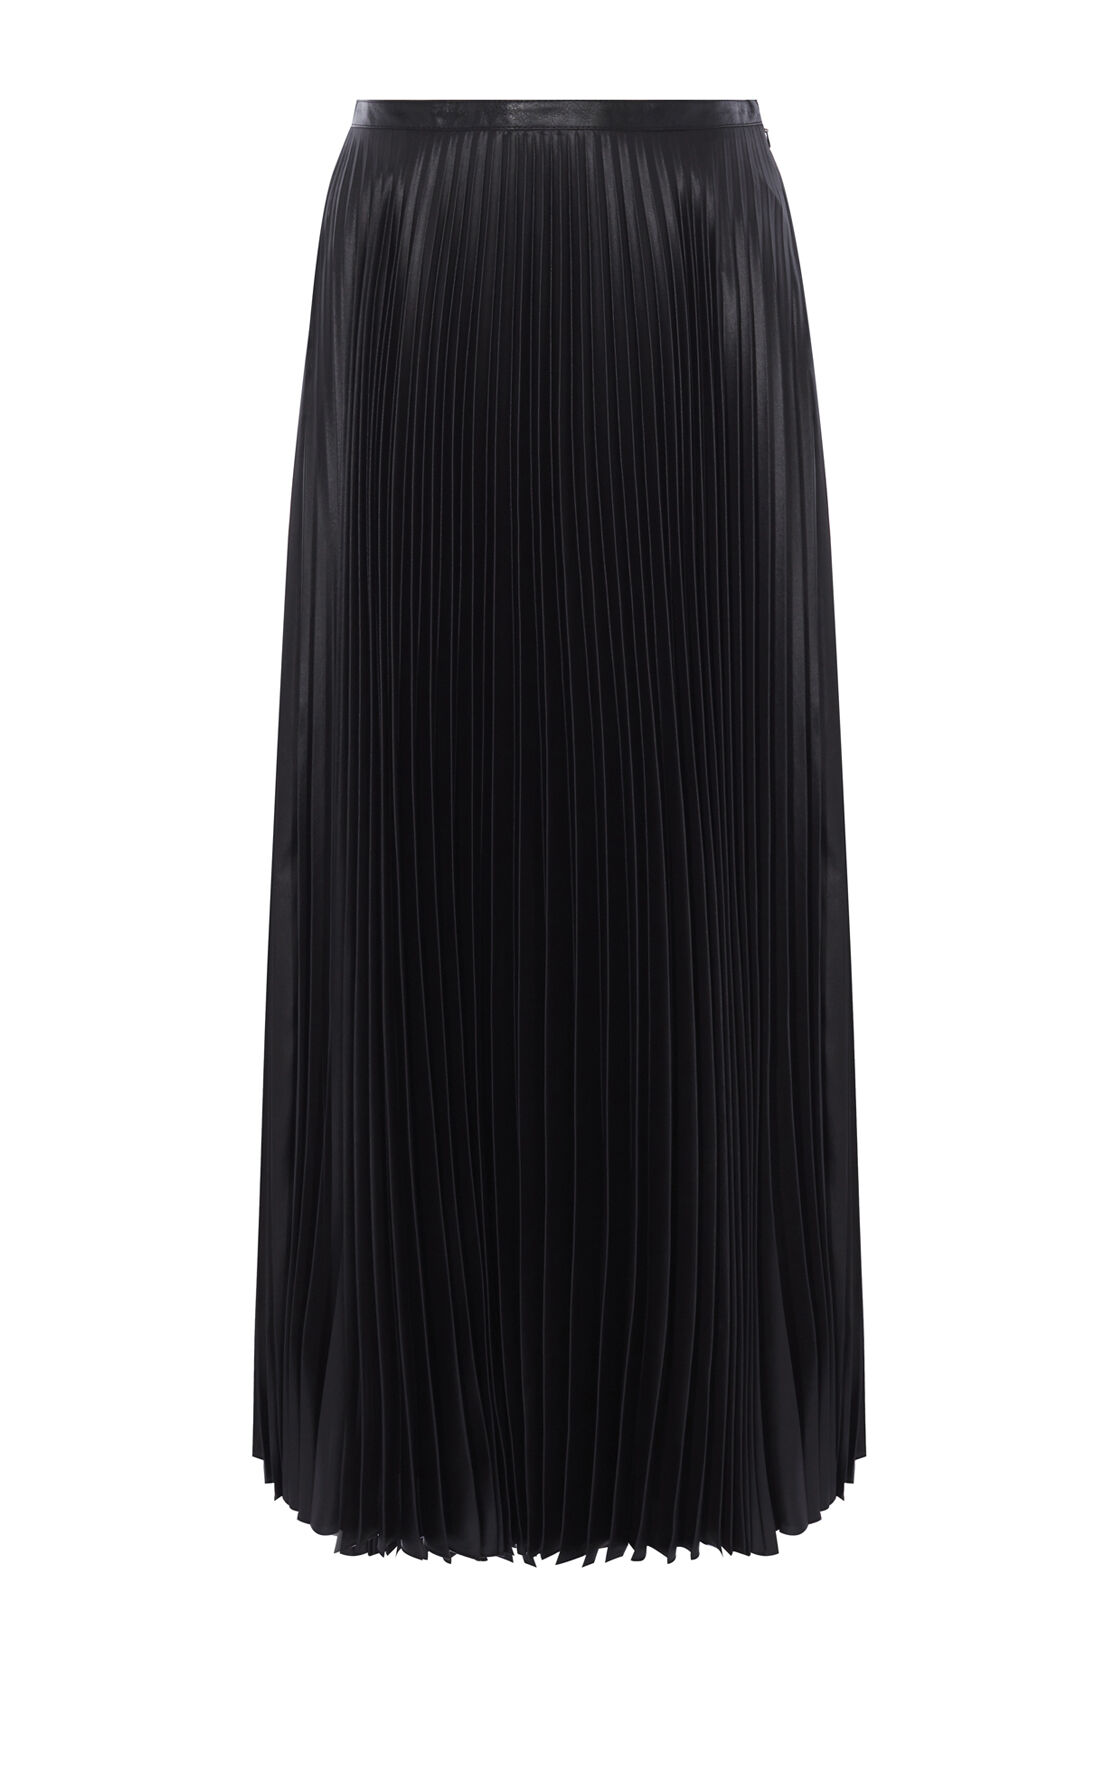 Karen Millen, WETLOOK PLEAT MAXI SKIRT Black 0